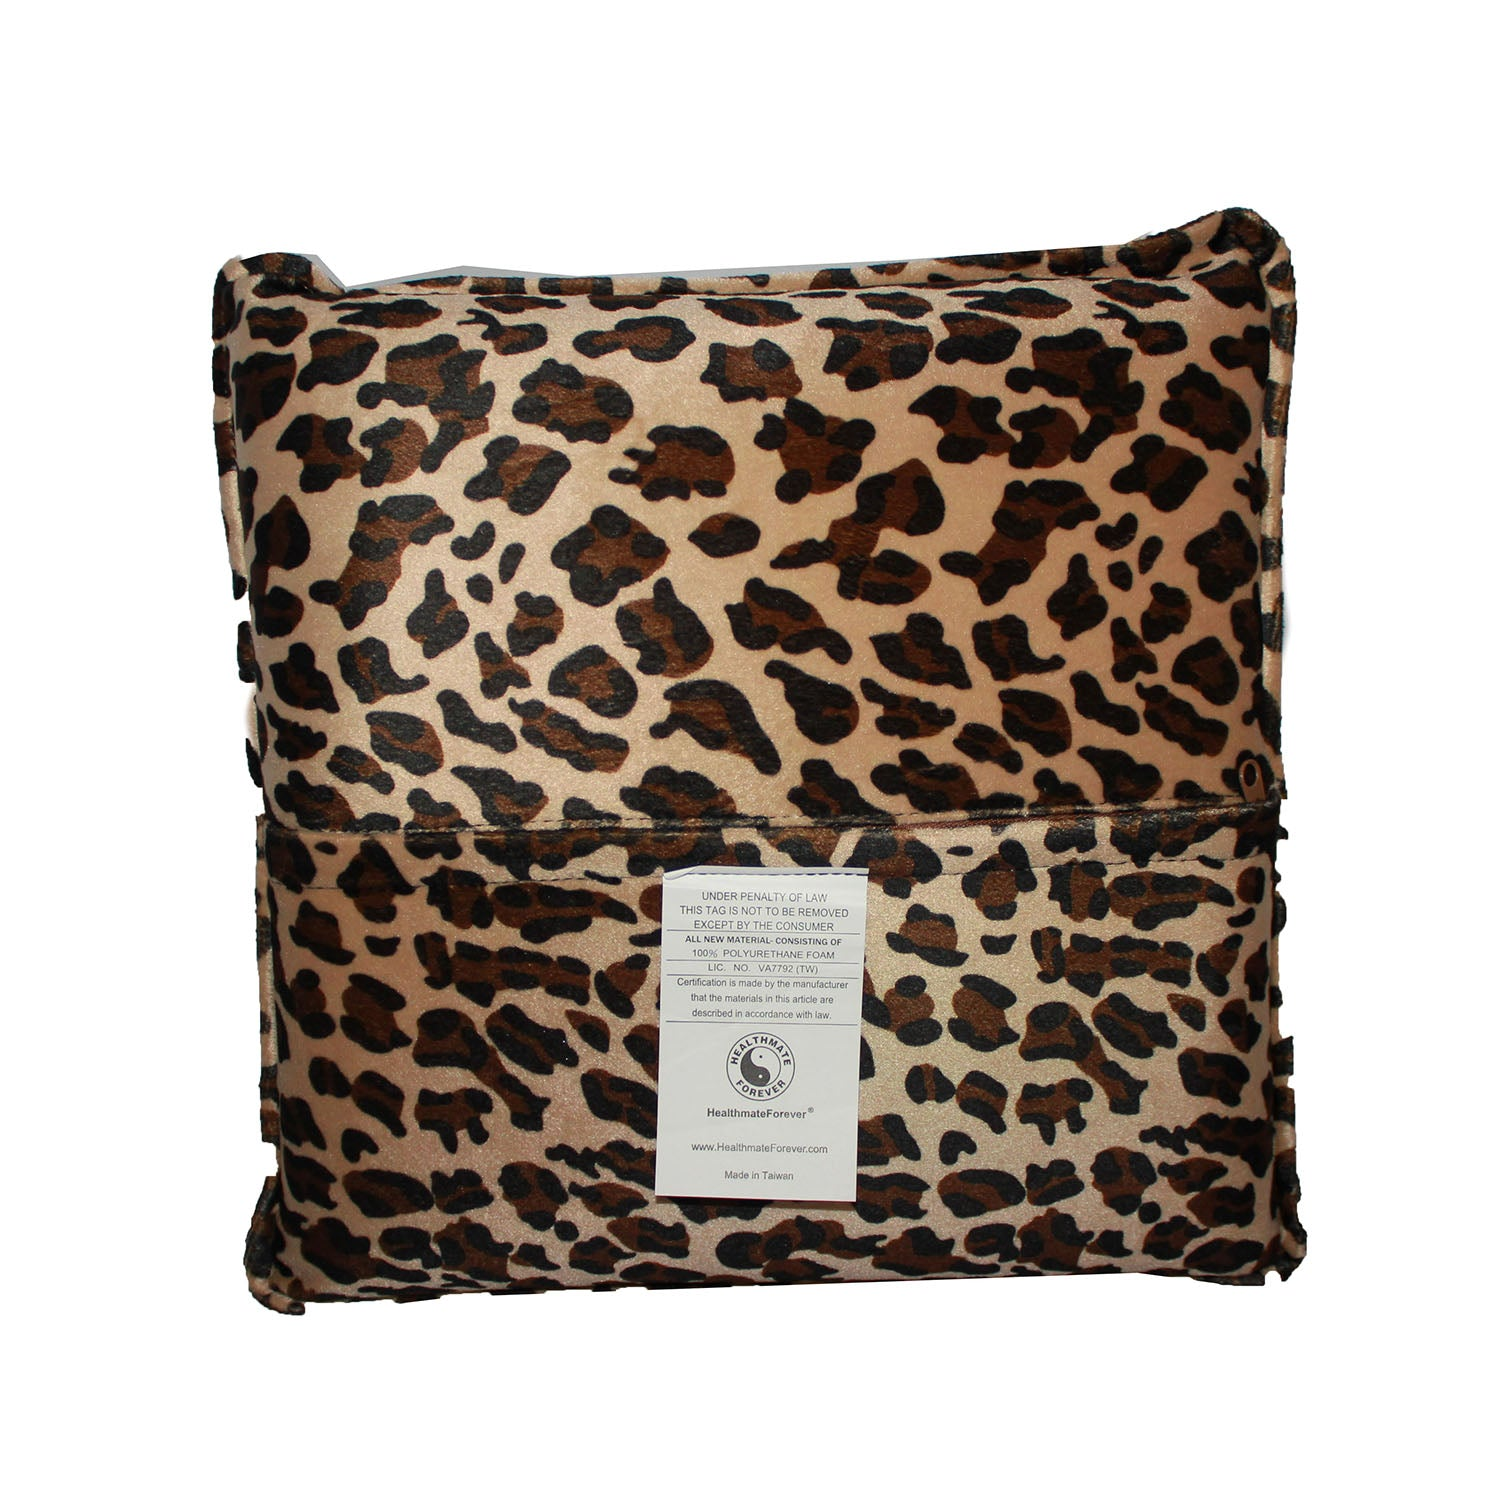 Pressure Activated Massage Pillow Big Leopard - HealthmateForever